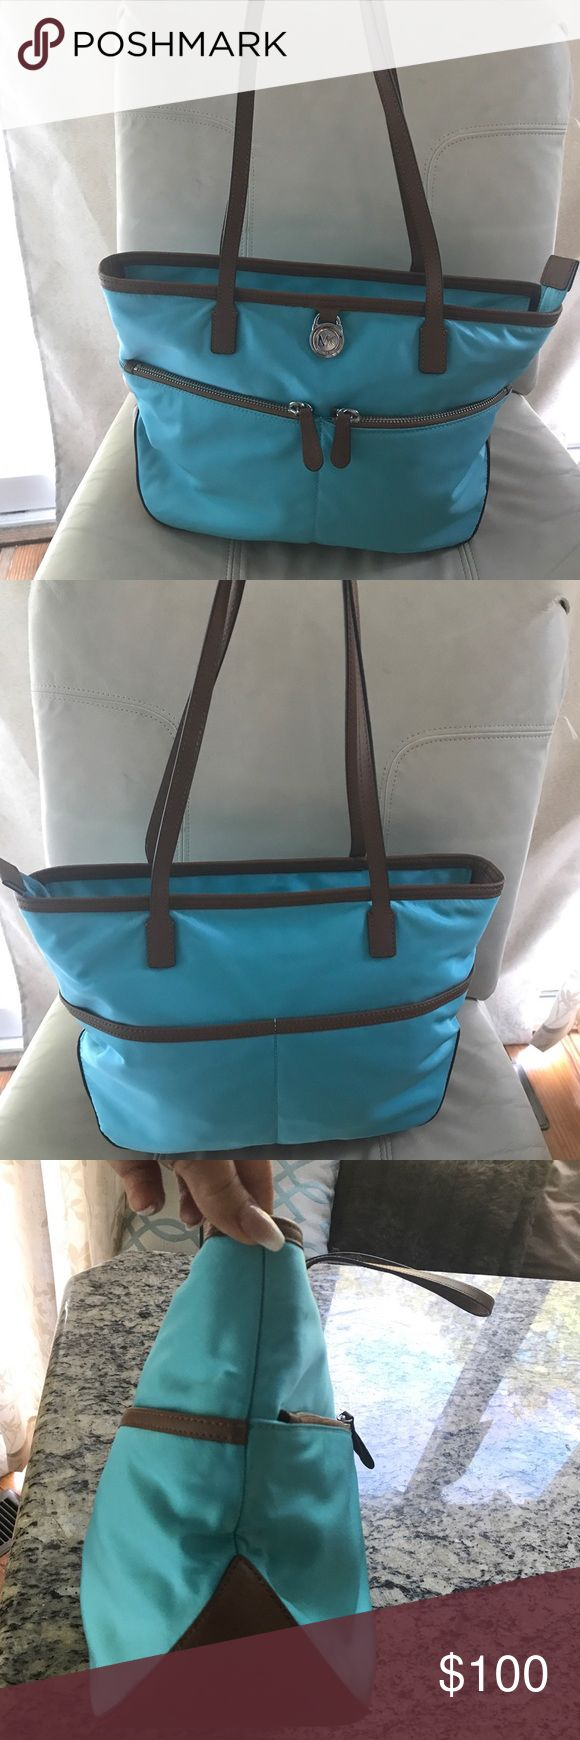 Michael Kors medium tote Gorgeous blue and brown medium Michael Kors tote. NWOT. Beautiful contrasting colors and lime green liner. This item is in perfect condition! Michael Kors Bags Totes